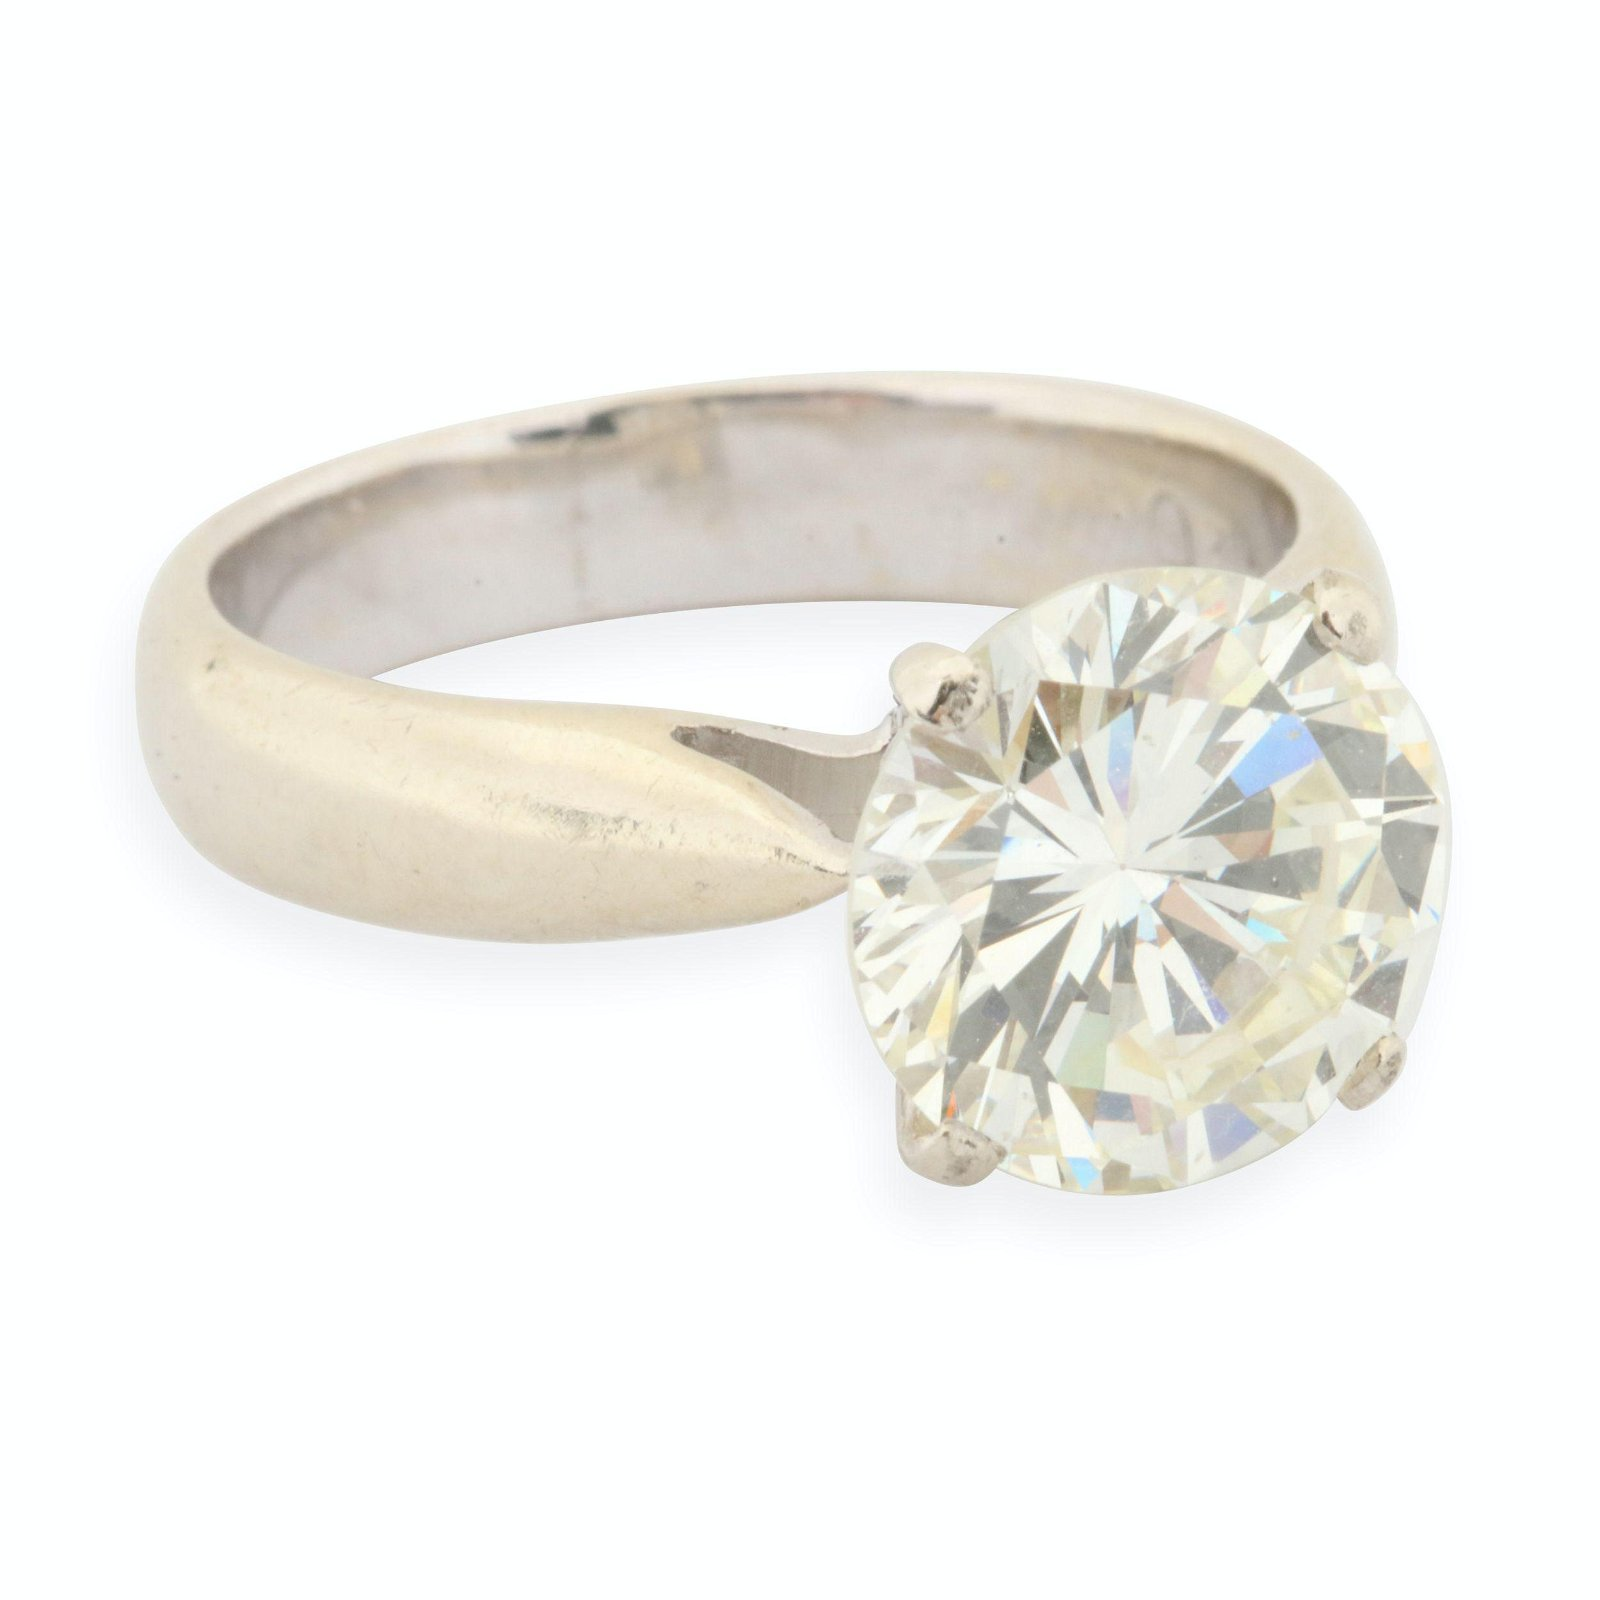 18K 4.25 Carat VS1 Diamond Solitaire Ring